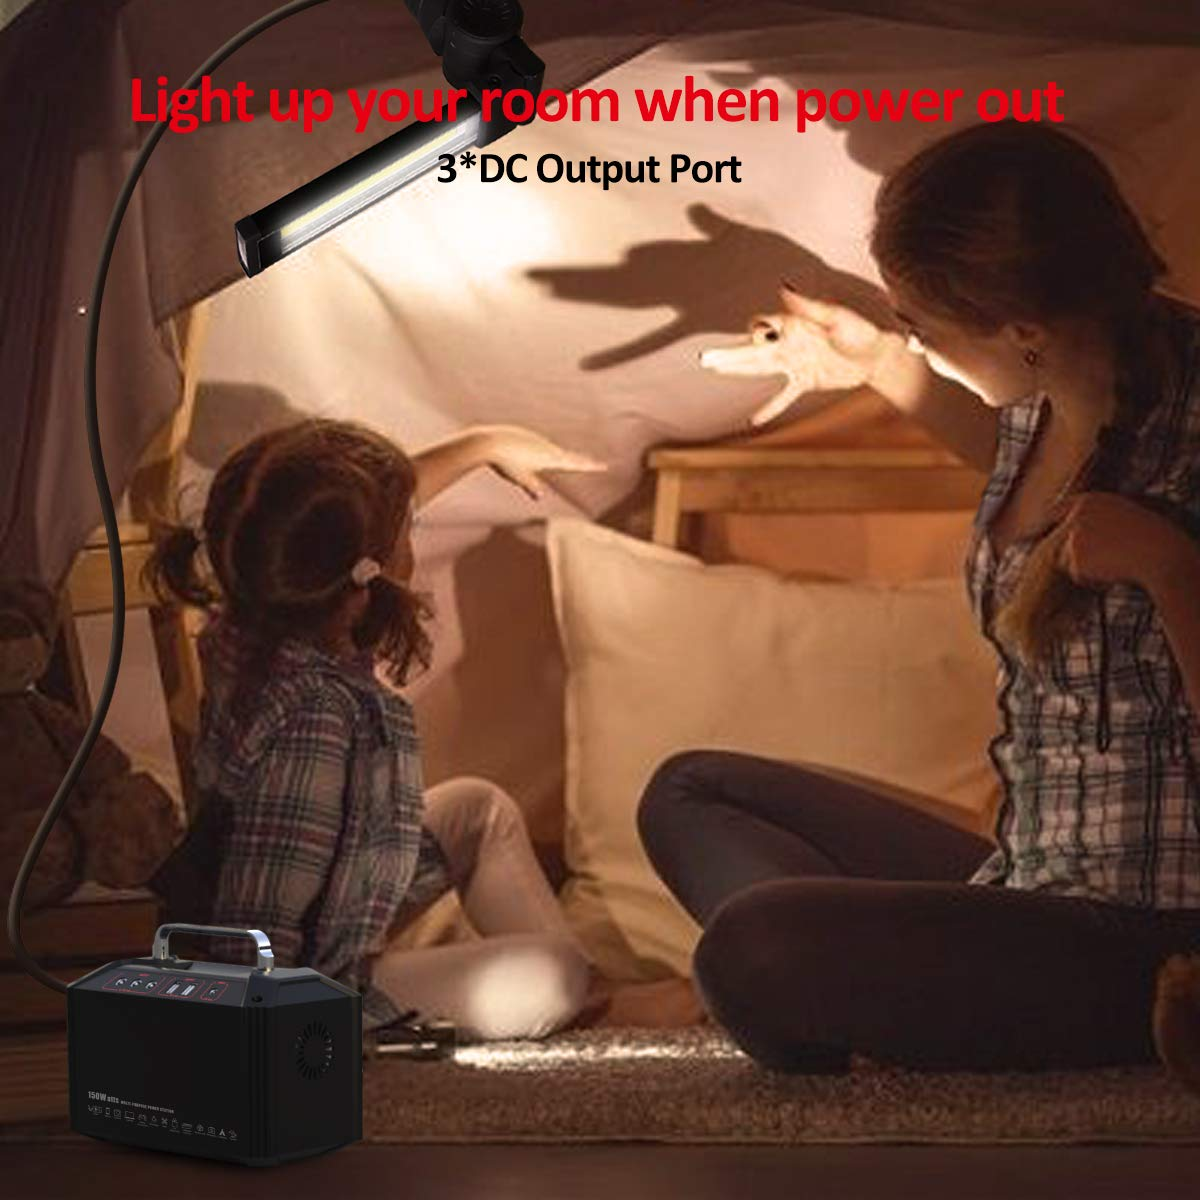 PAXCESS Generator Portable Power Station-[150W Upgraded]-Lithium Battery Pack Supply with 110V AC Outlet, 3 DC 12V Ports, 2 USB Port, Solar Electric Small Generators for Camping Travel Home Emergency by PAXCESS (Image #5)